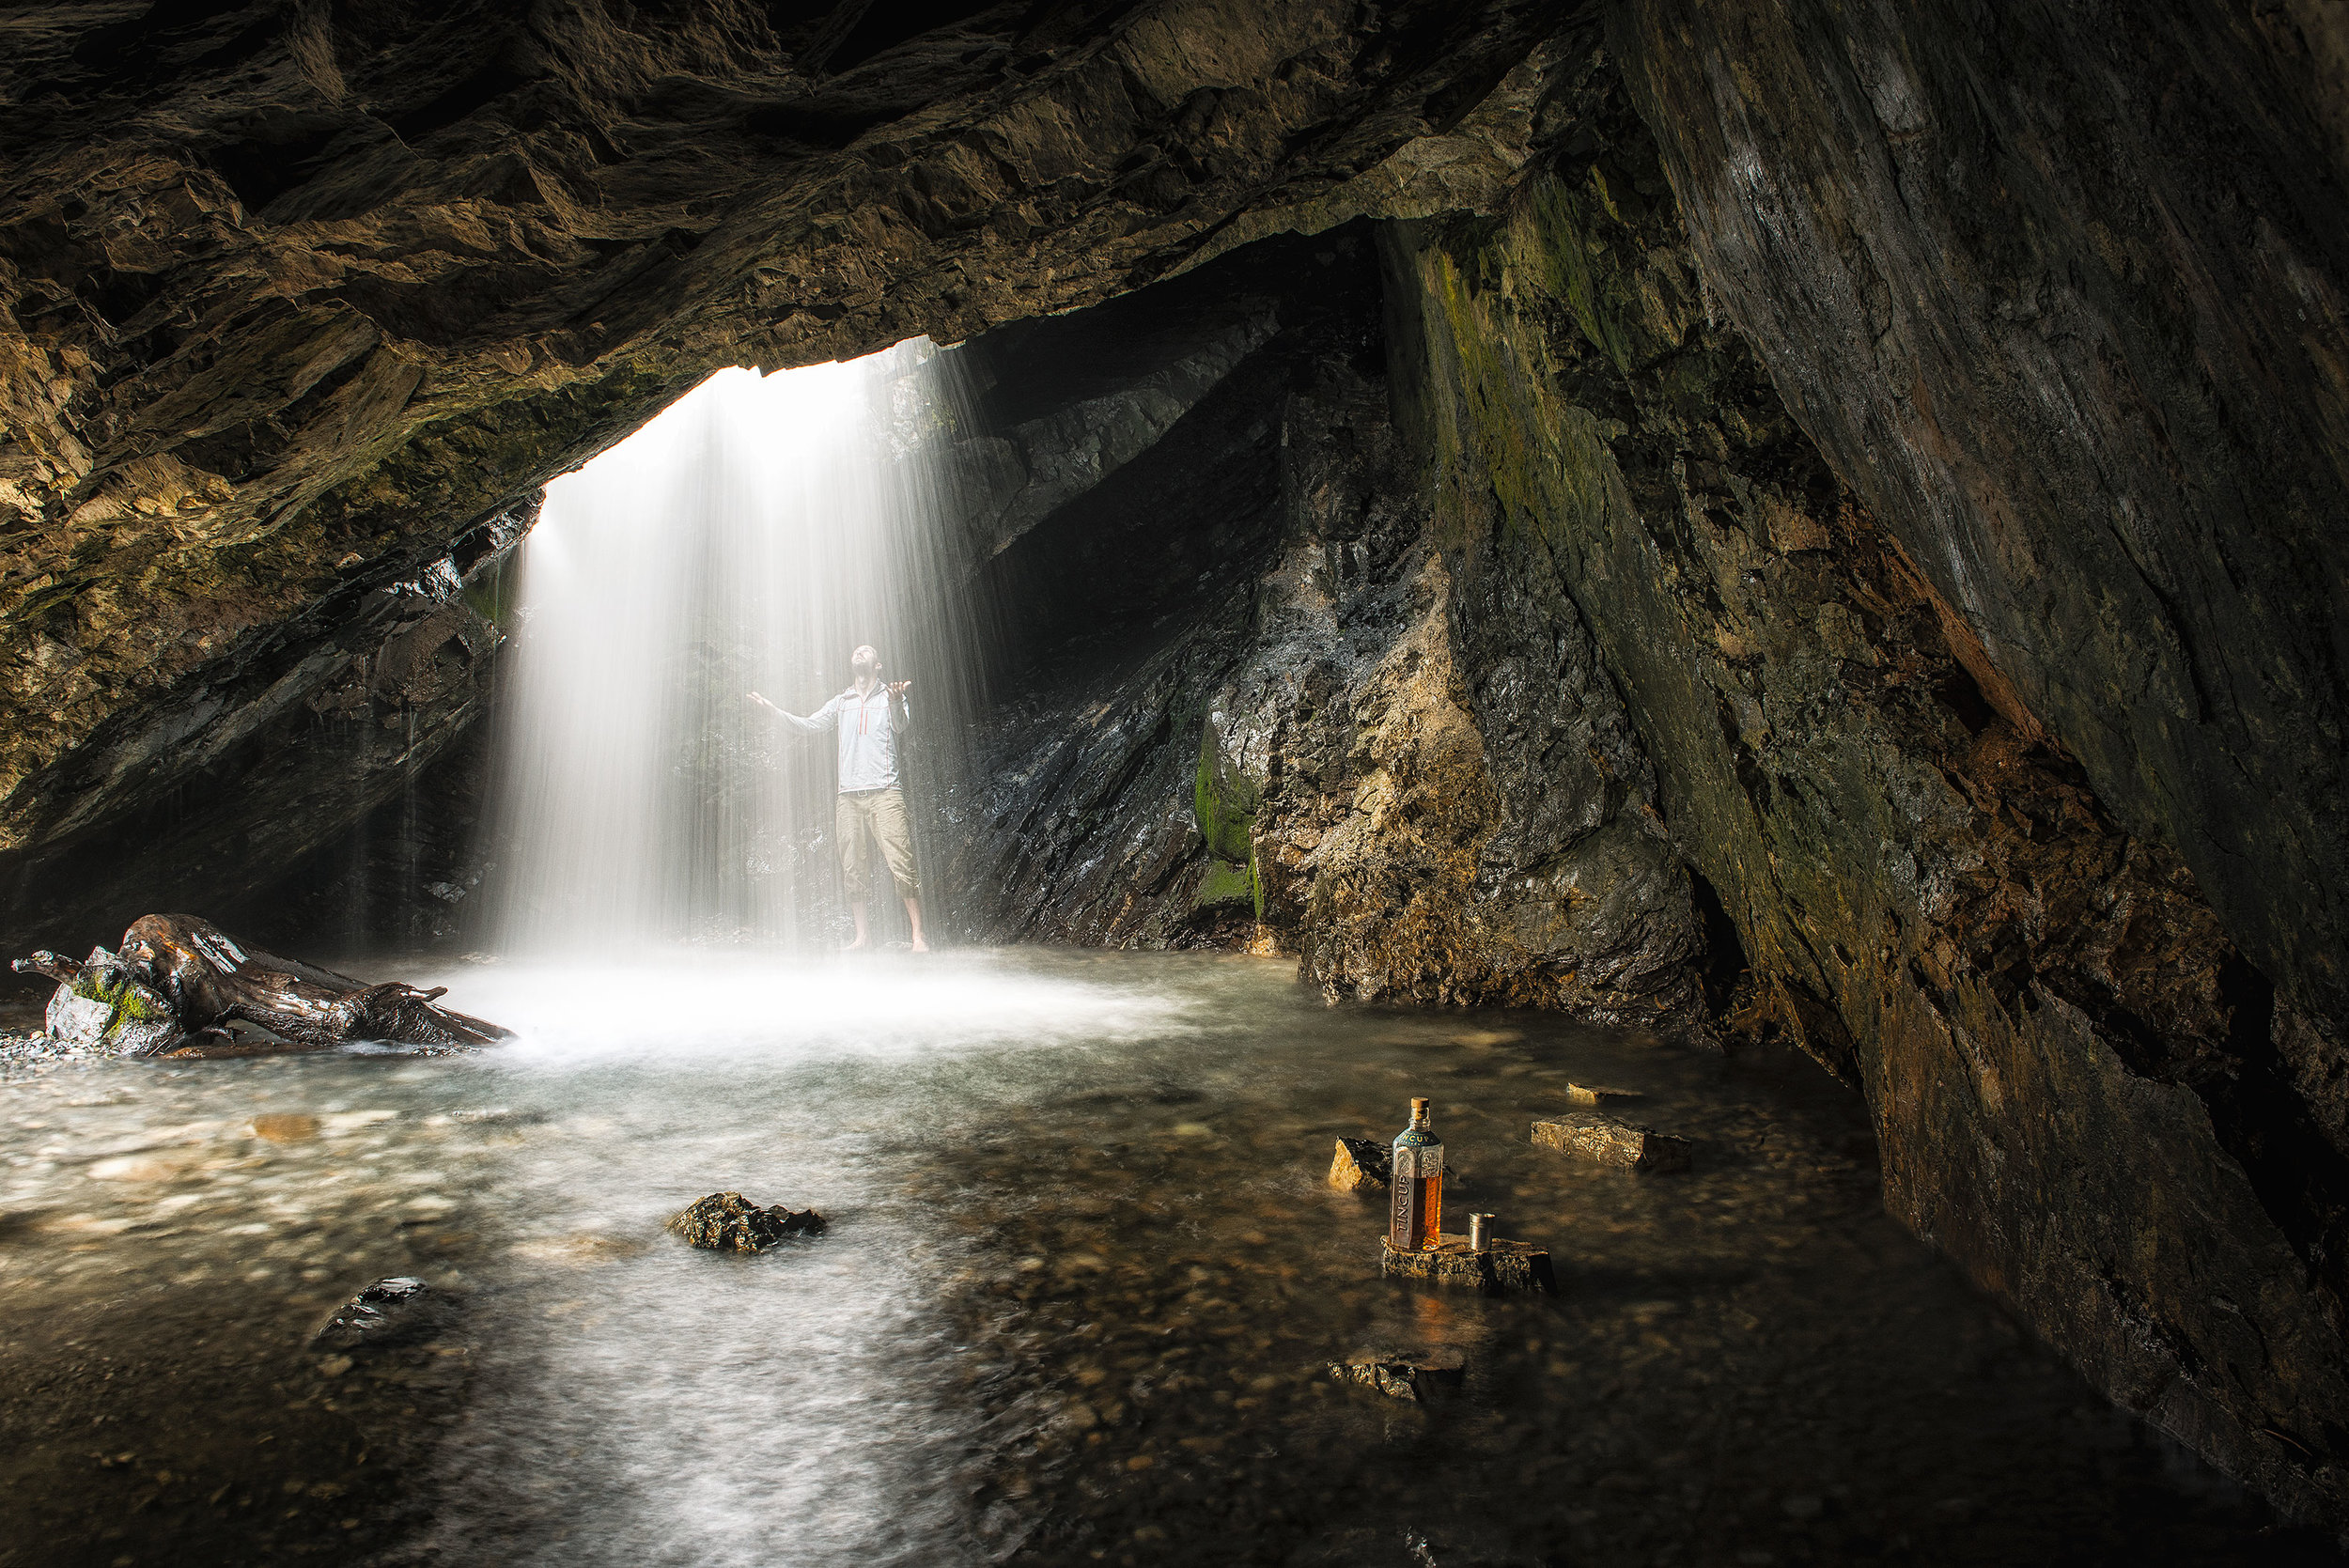 austin-trigg-whiskey-lifestyle-zion-product-TINCUP-Donut-Falls-waterfall-cave.jpg